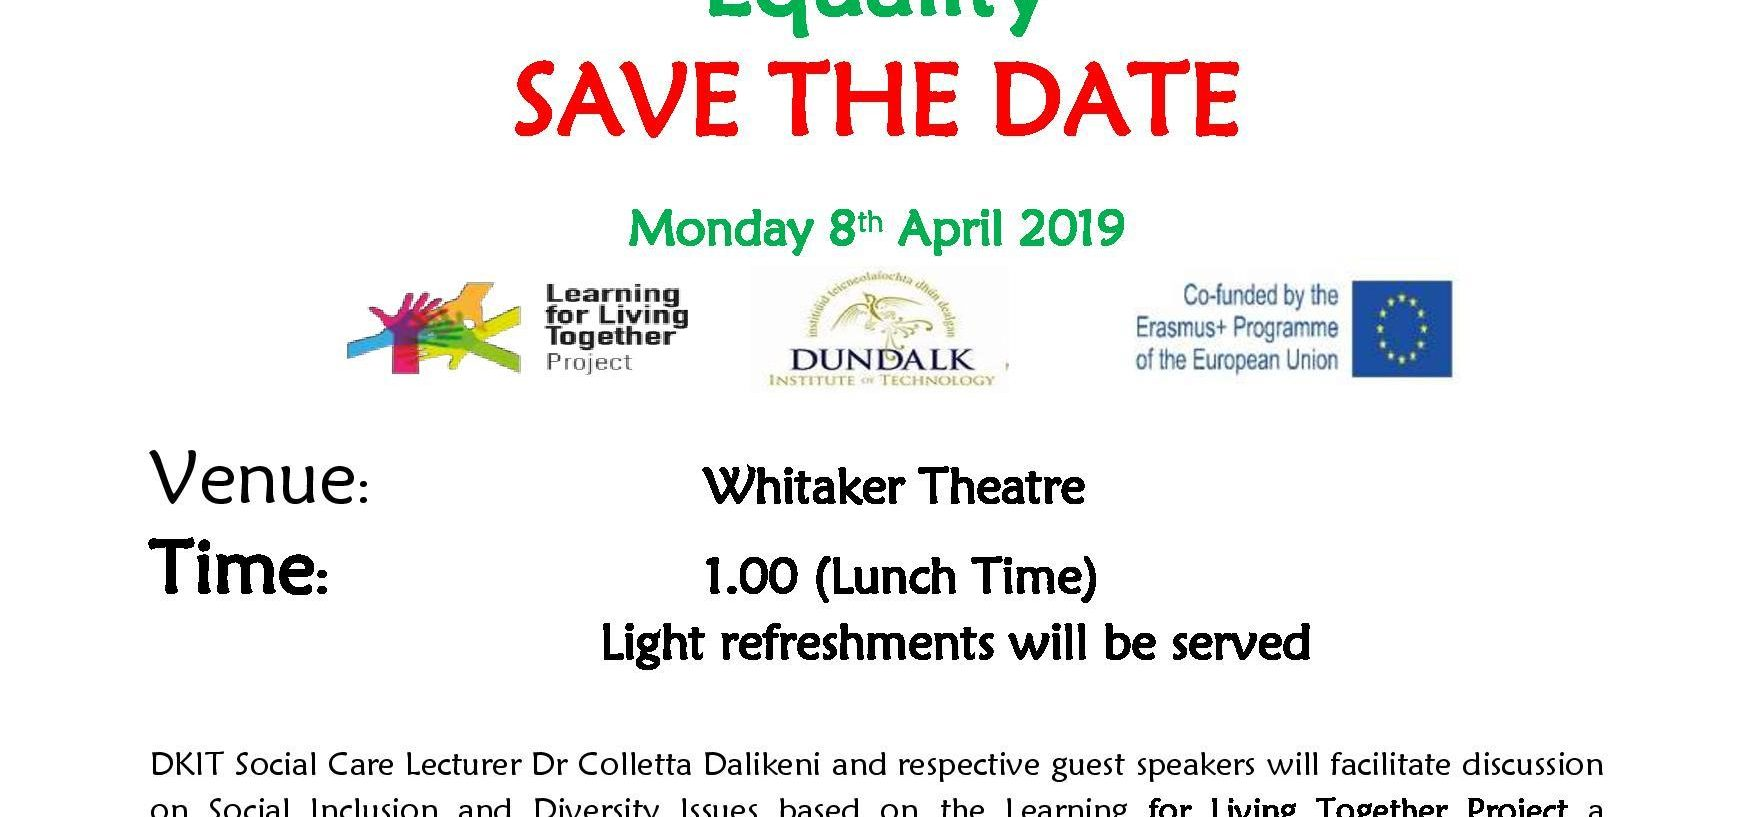 Learning for living together - a social inclusion Project launches at DKIT